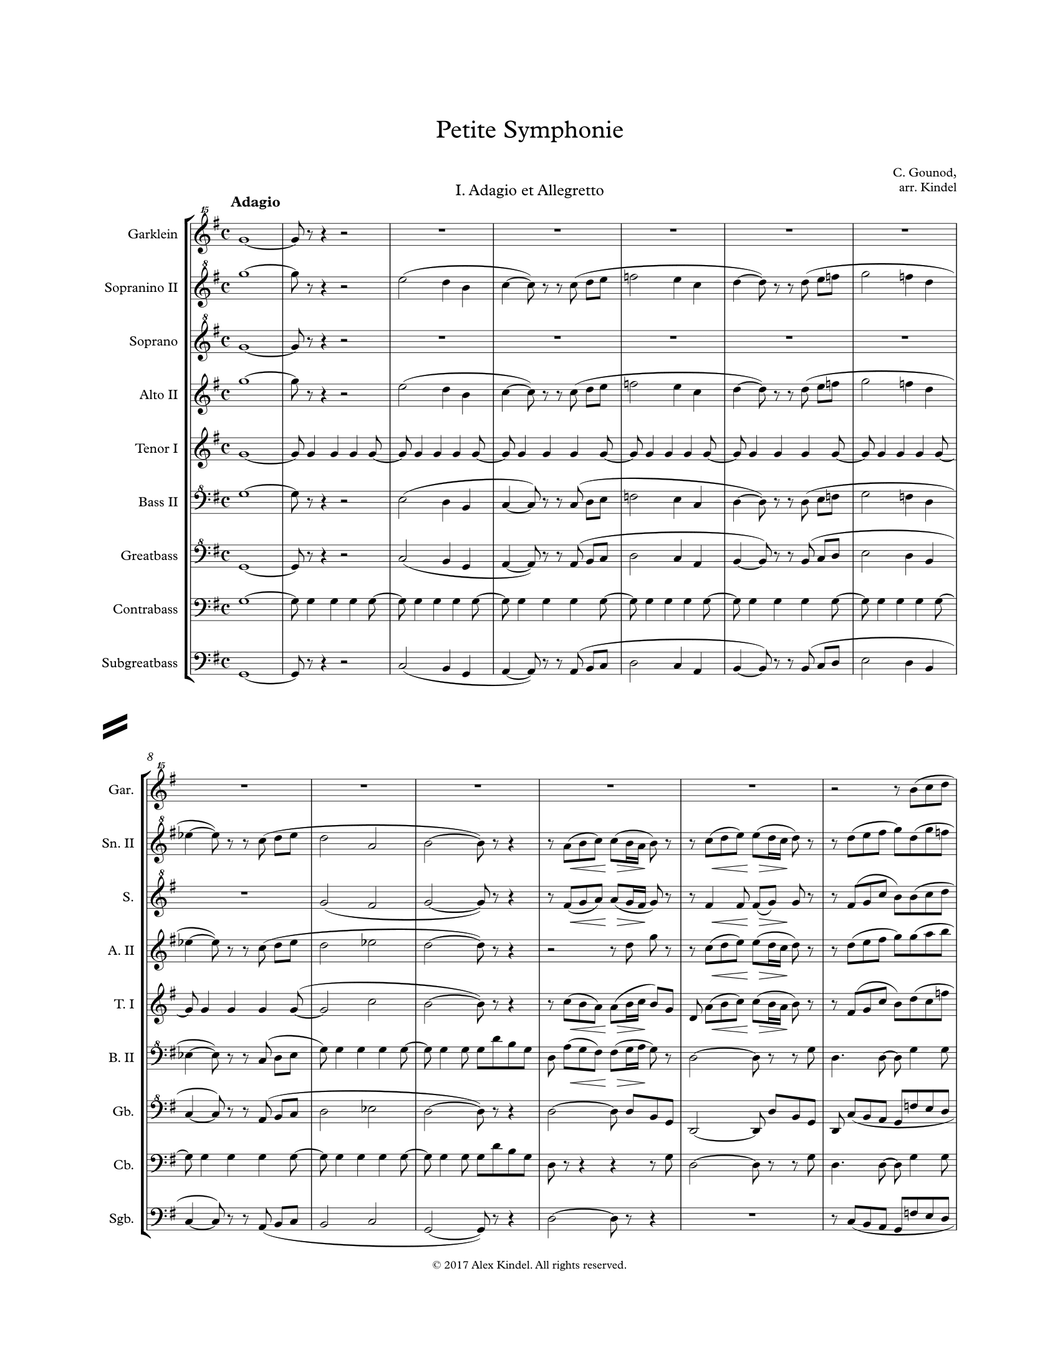 Gounod, C.: Petite Symphonie, for recorders